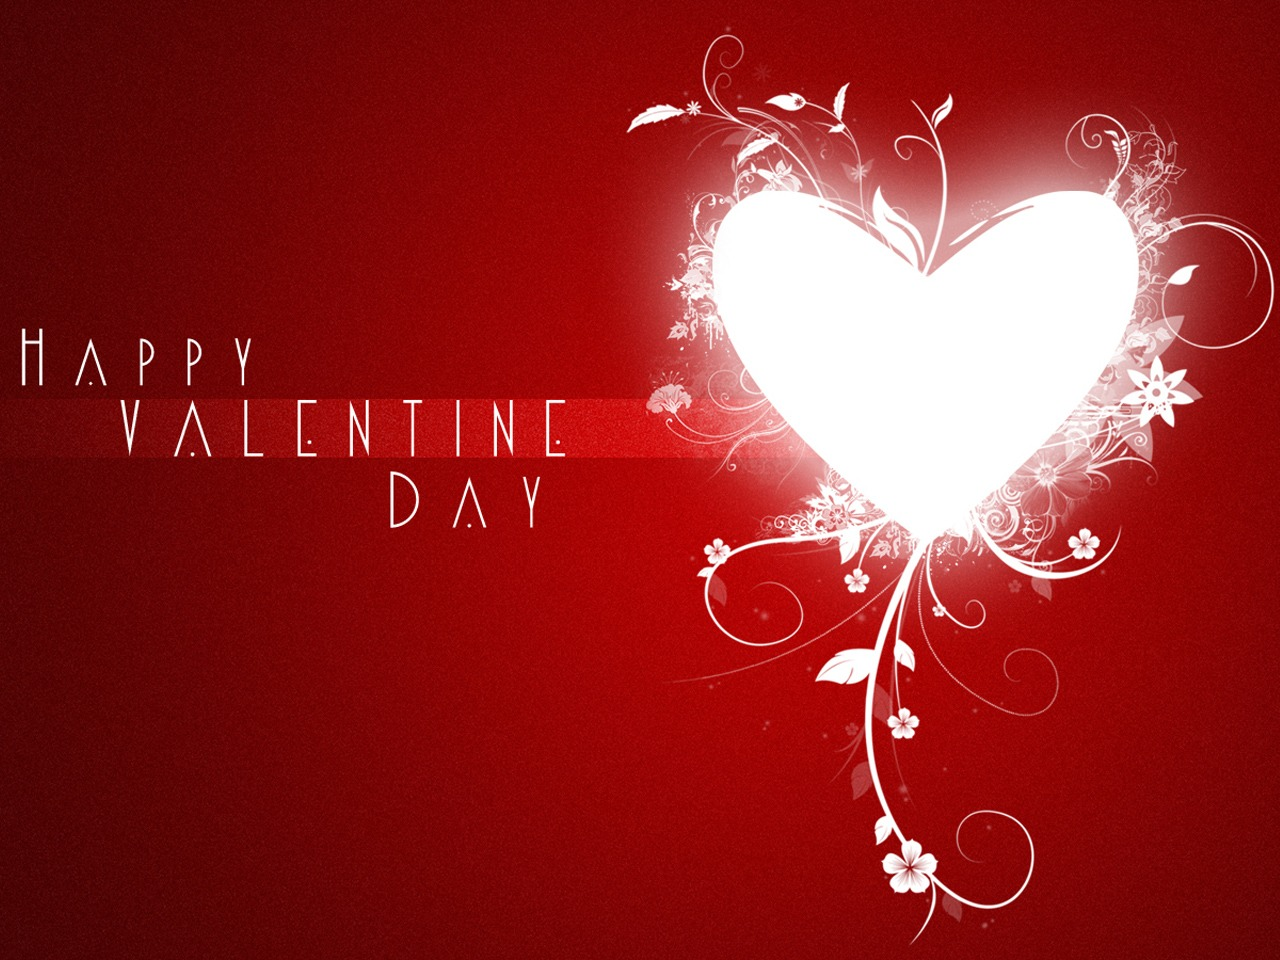 Valentine S Day Wallpapers Valentine Wallpapers For Facebook